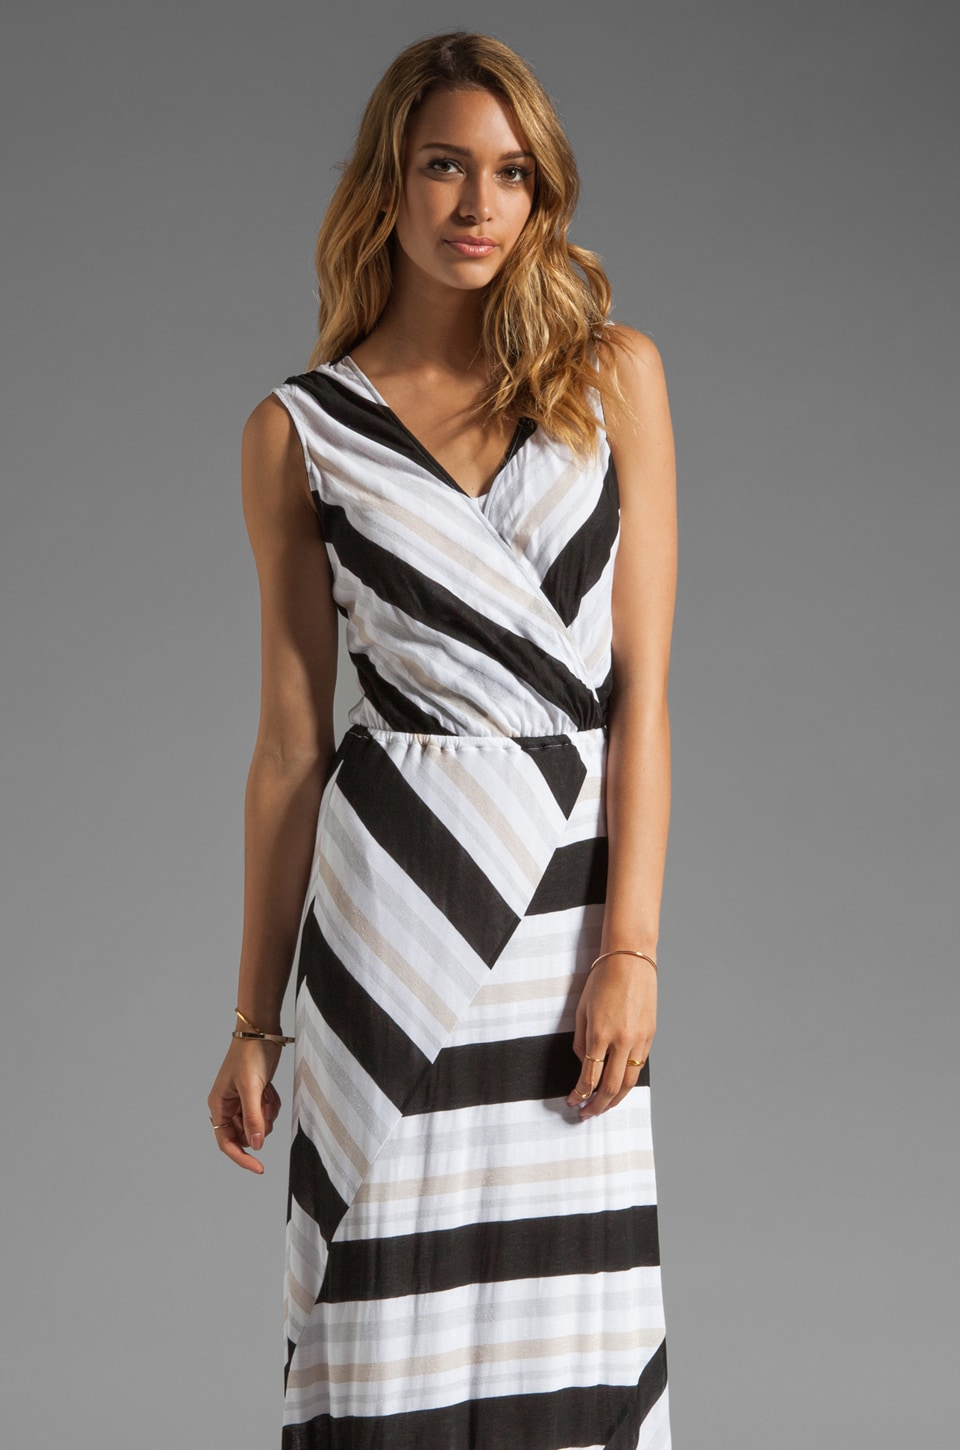 Ella Moss Zadie Stripe Dress in Black